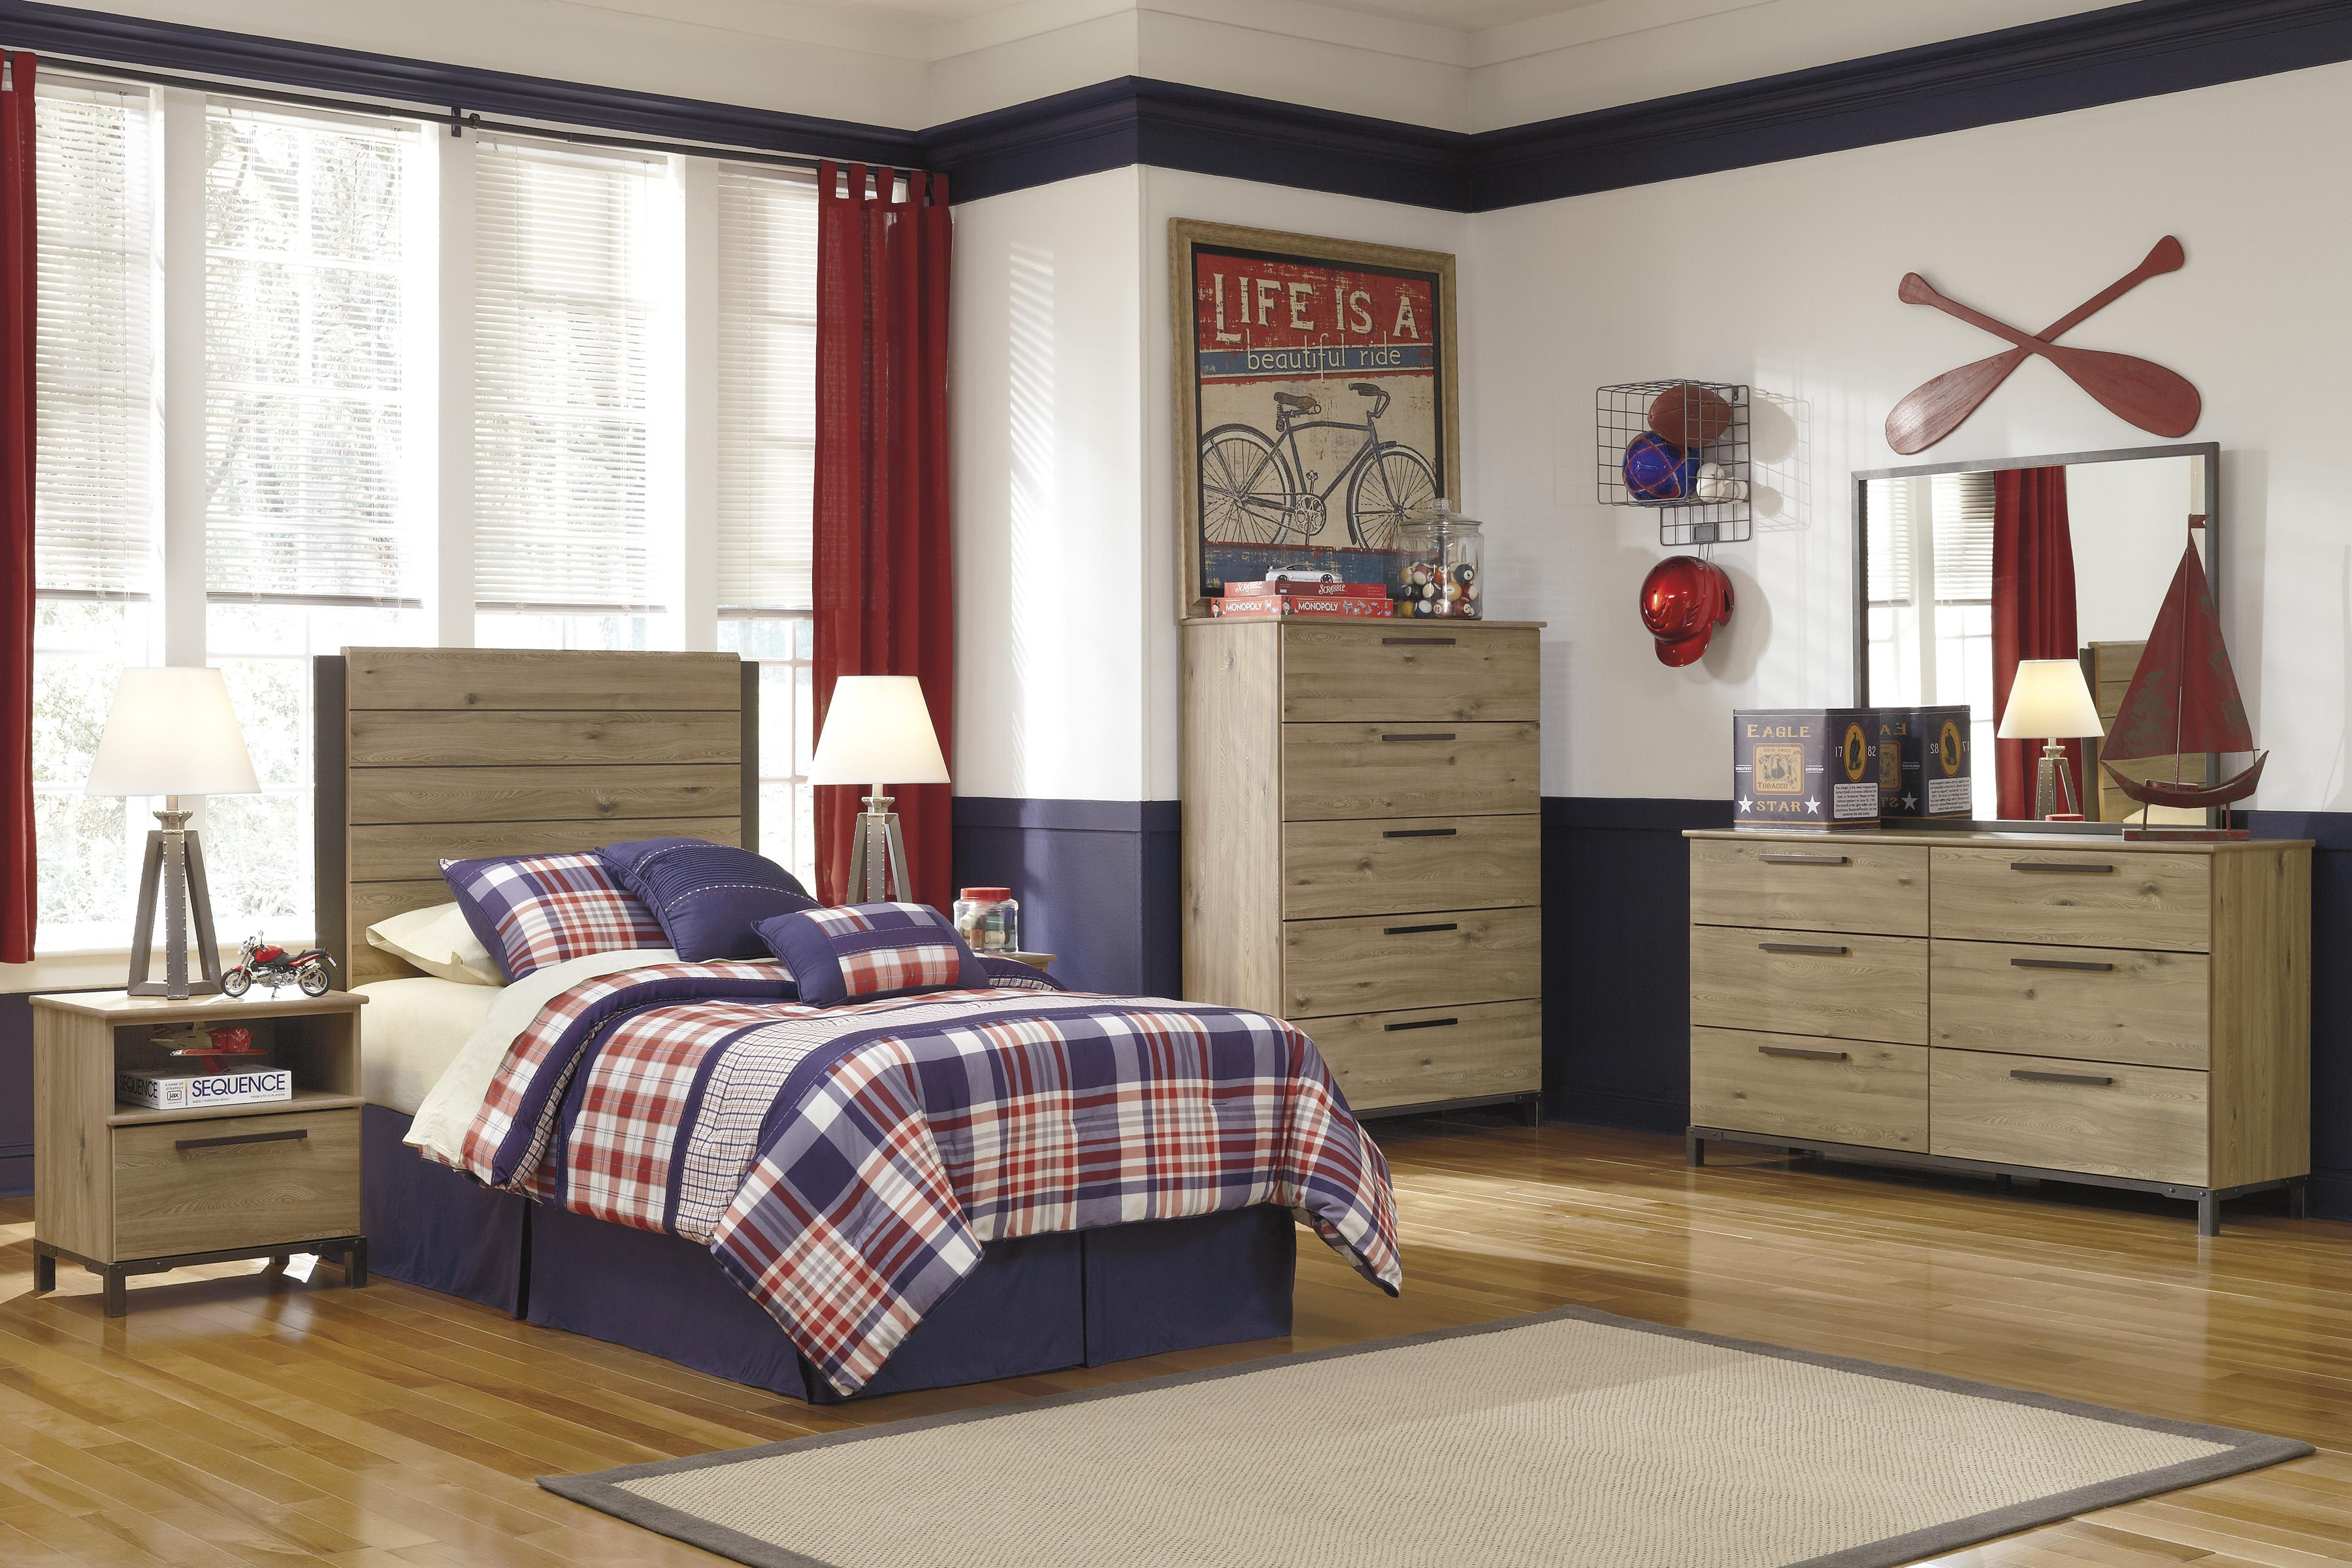 Signature Design by Ashley Dexifield Twin Bedroom Group - Item Number: B298 T Bedroom Group 2